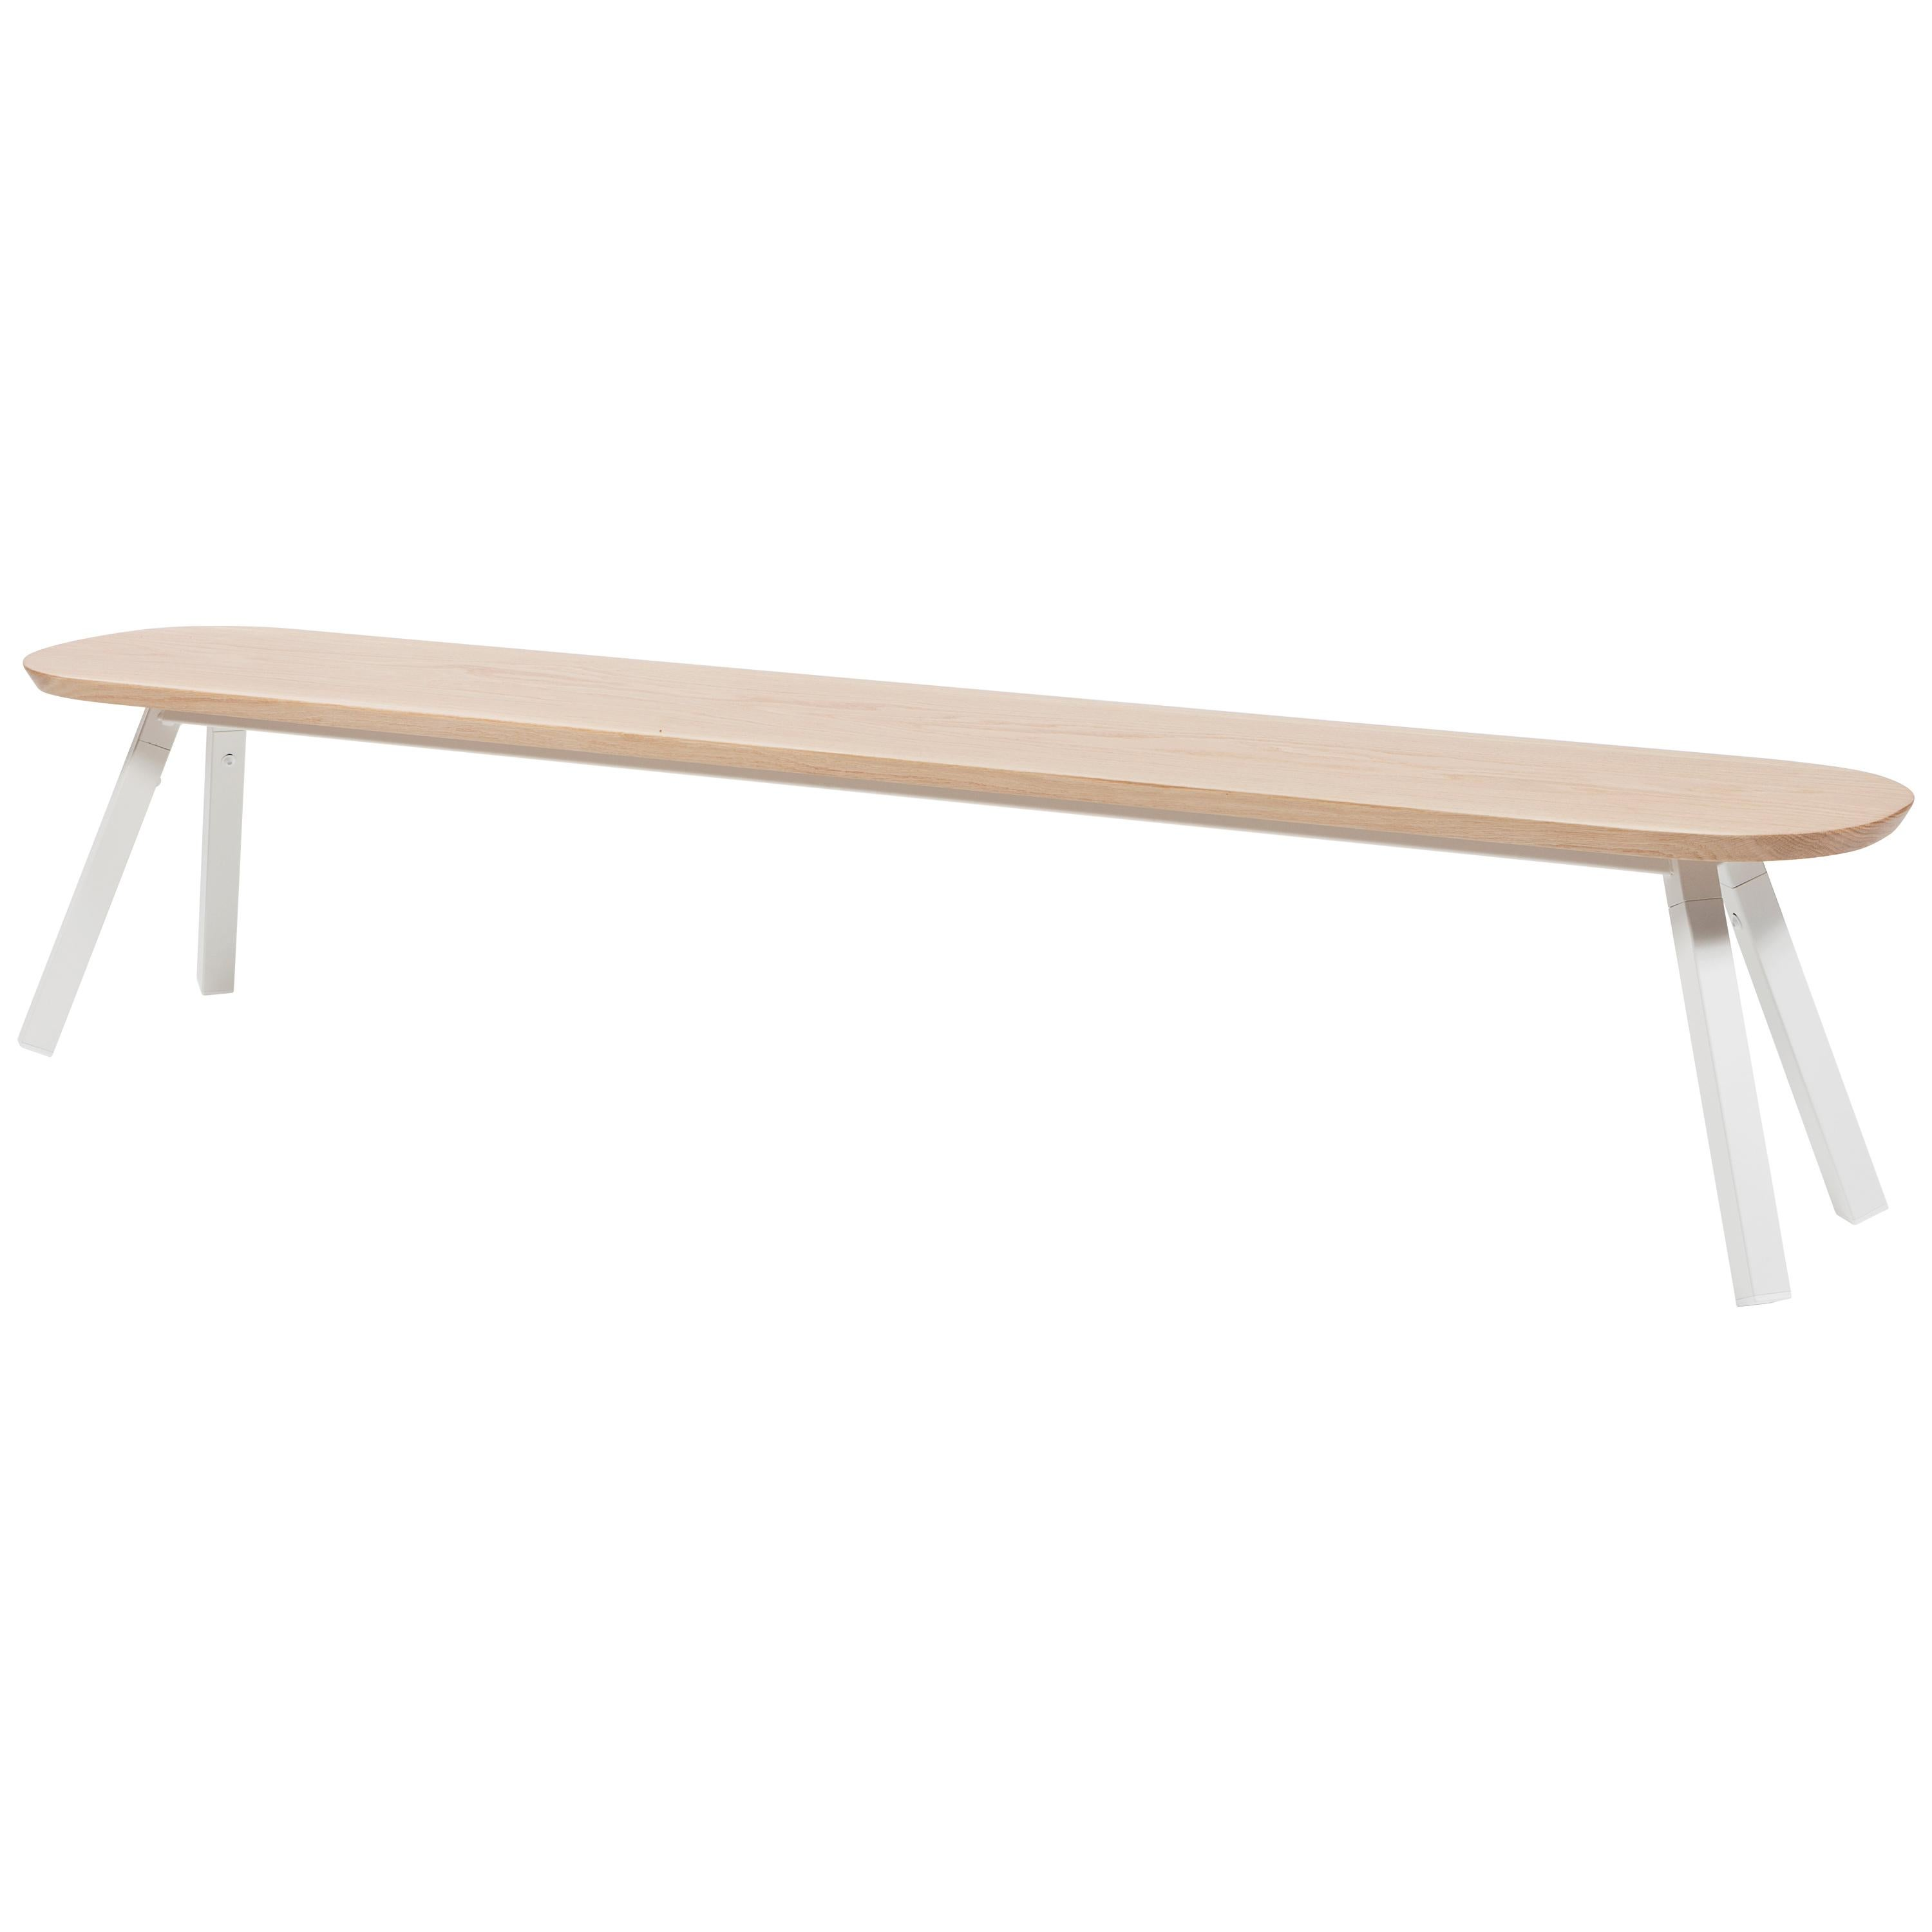 RS Barcelona You and Me 220 Bench in Oak with White Legs by A.P.O.